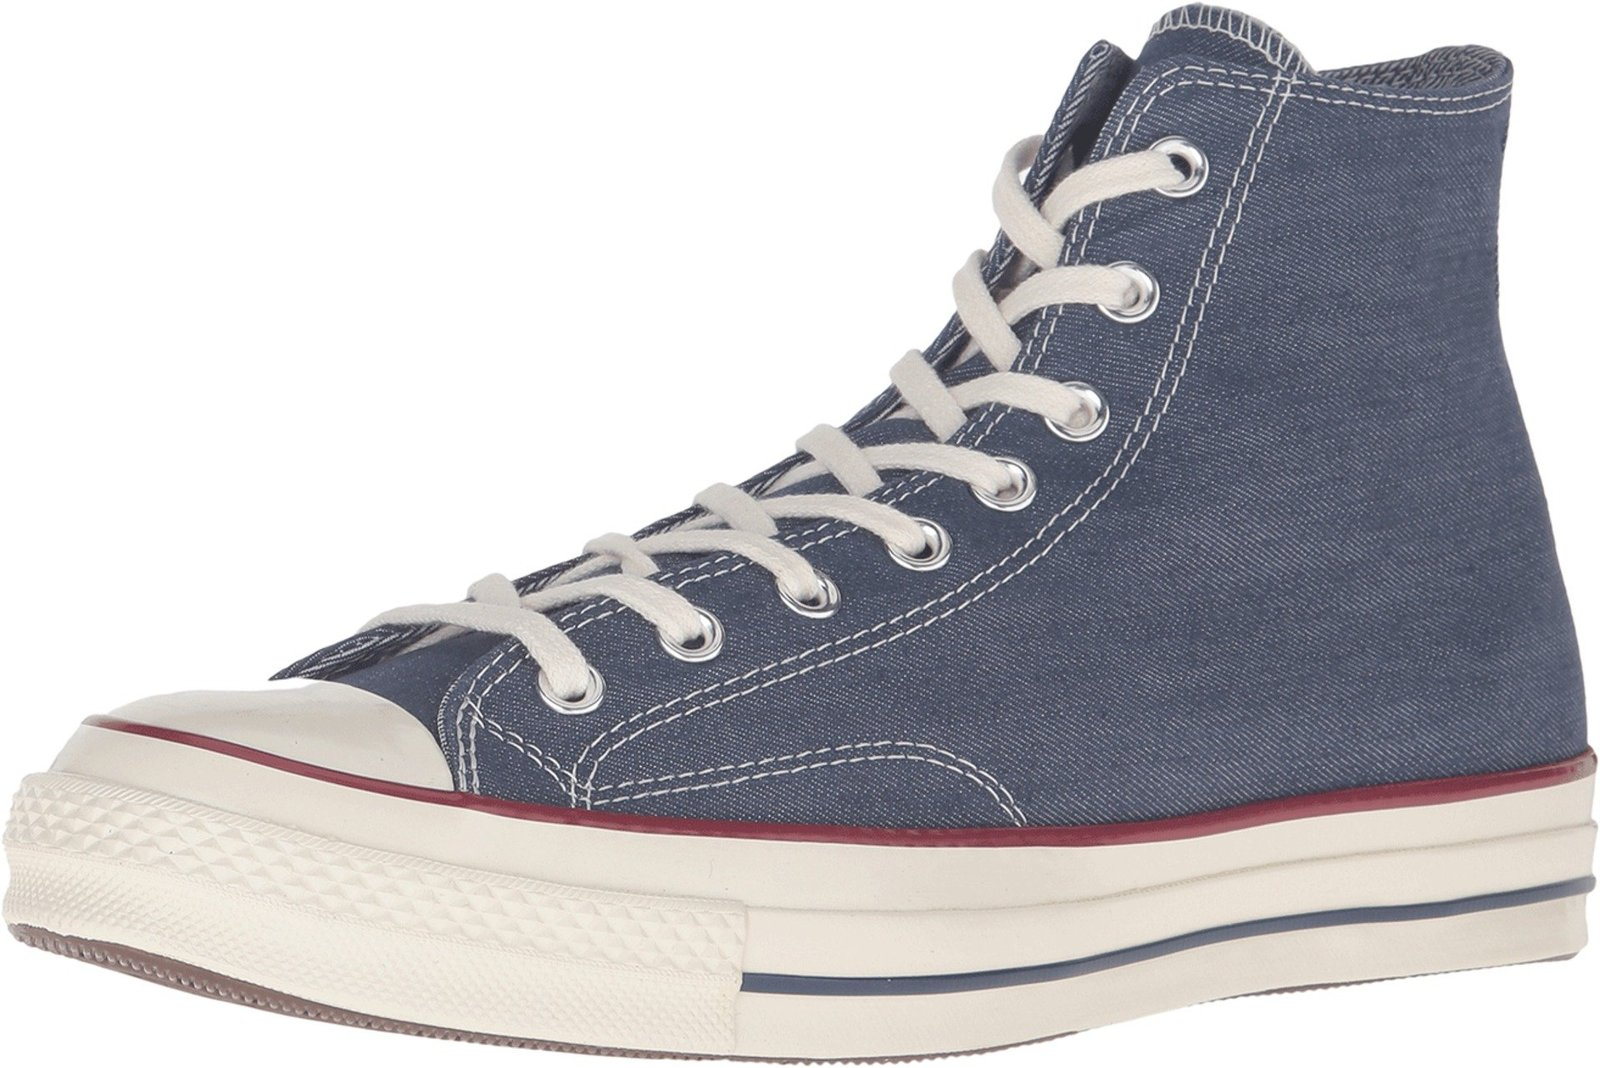 Converse Chuck Taylor All Star '70 Denim Shoes (8.5 D(M) US / 10.5 B(M) US, Insi